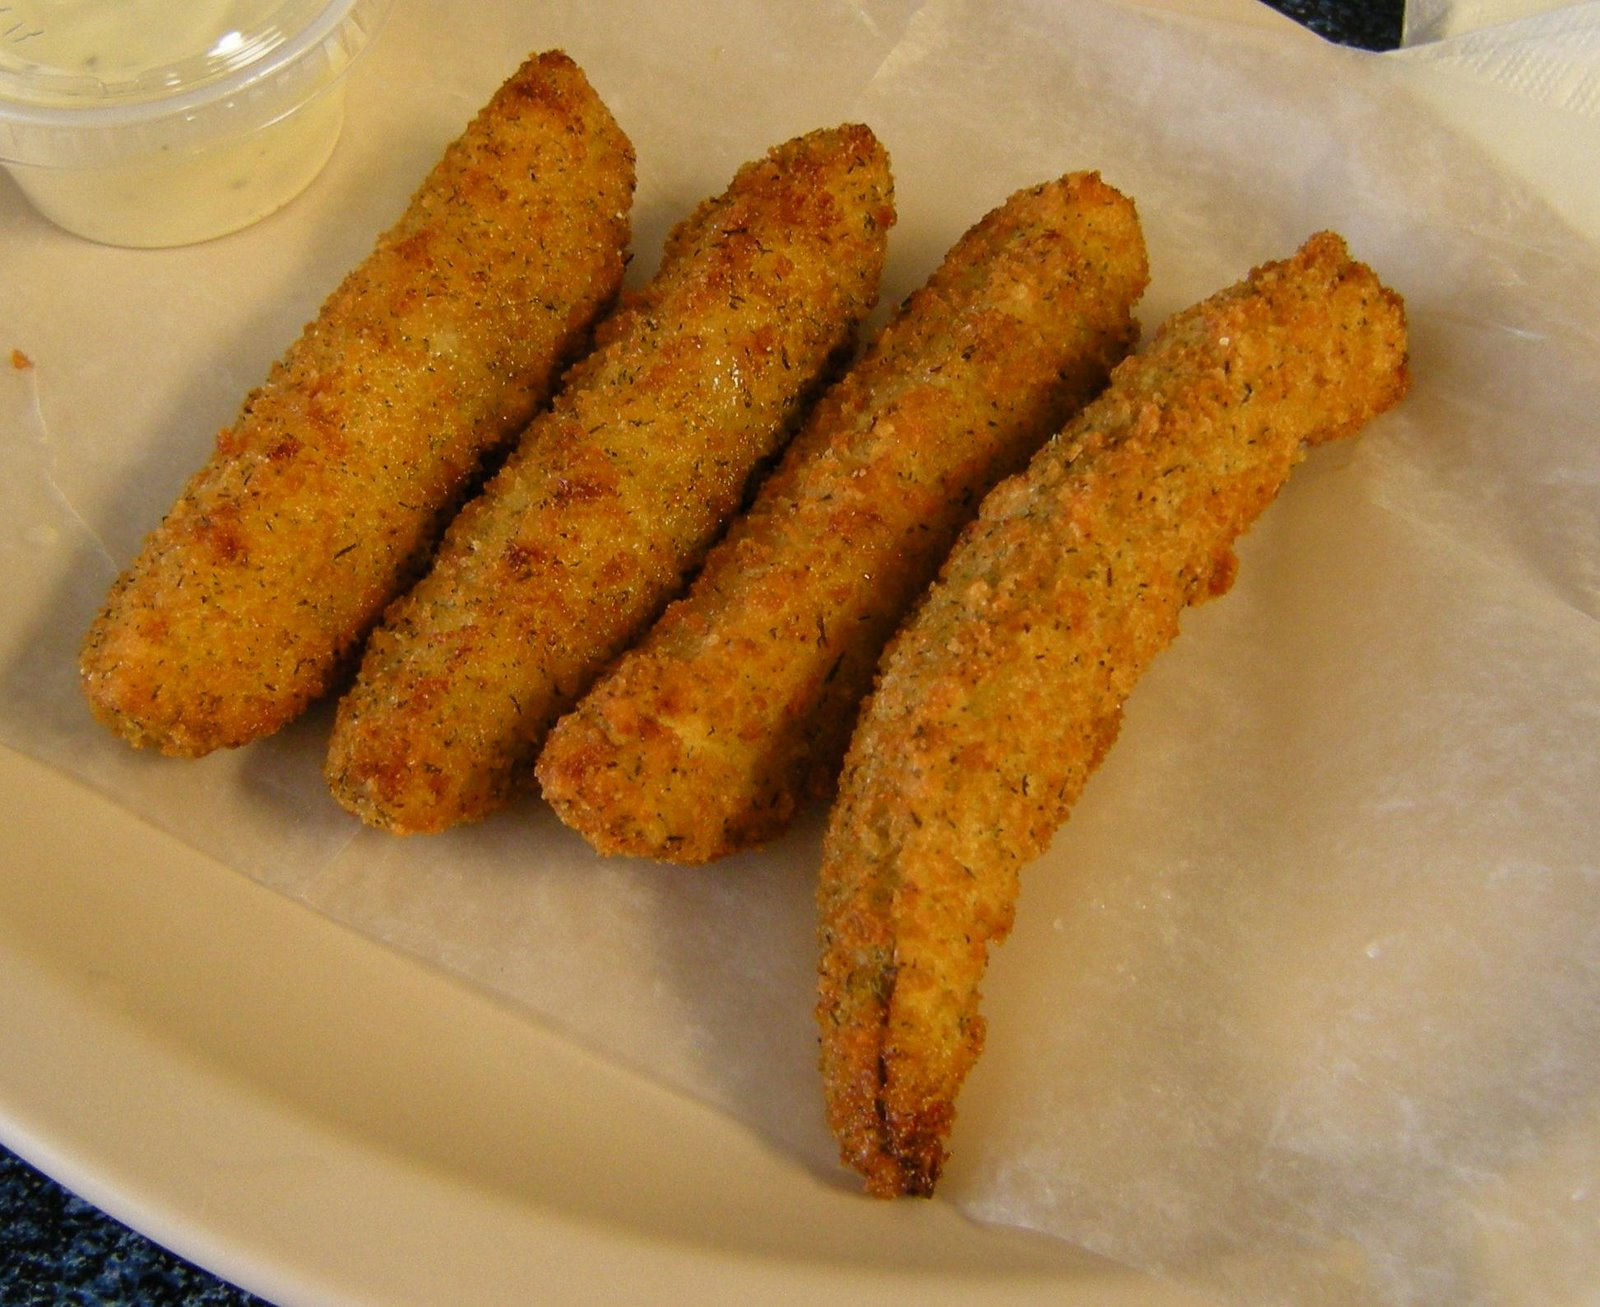 Fried pickle spears at Uncle Dean's Catfish. (Kat Robinson)